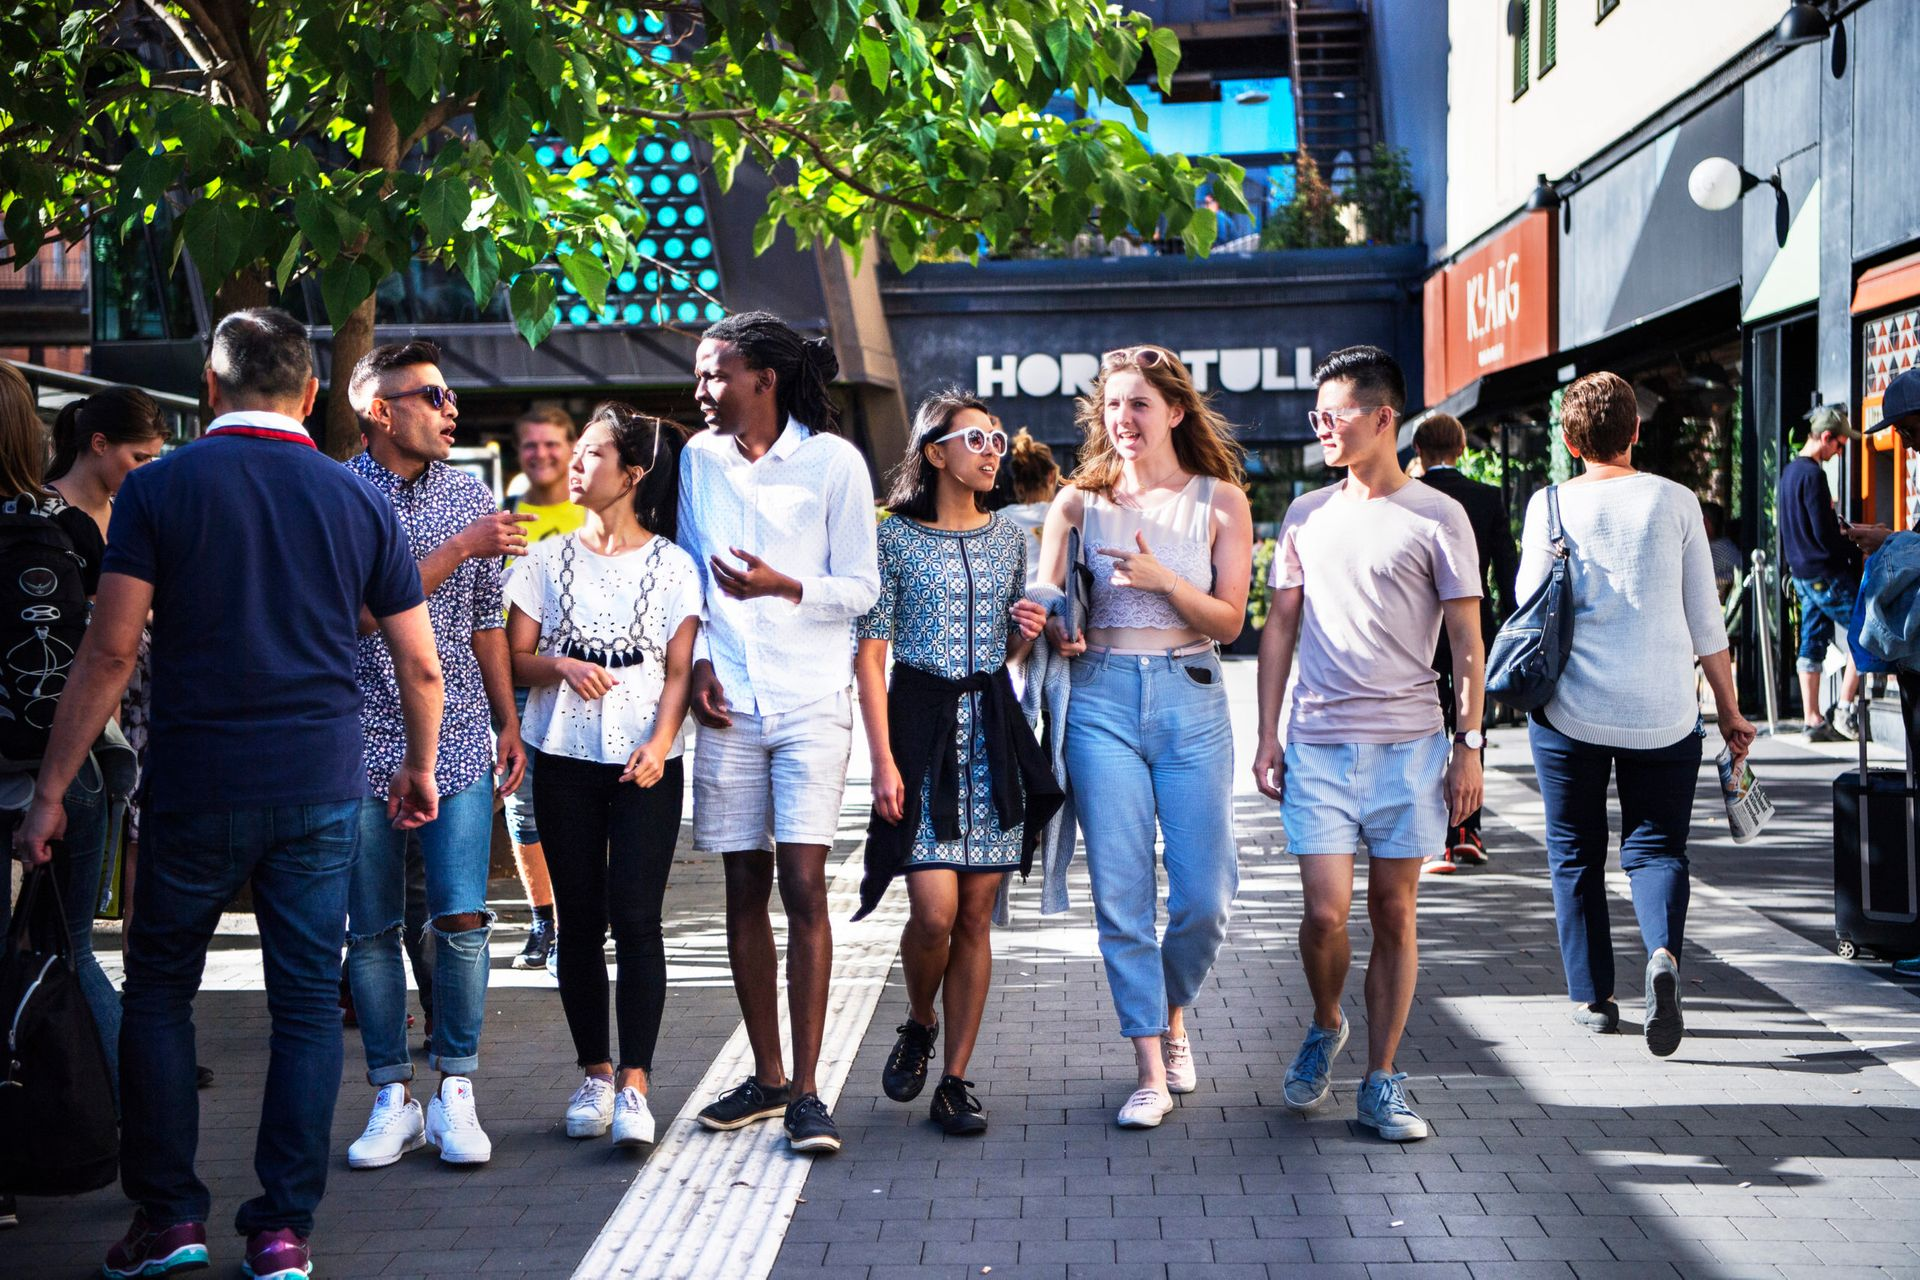 Group of international students walking along a shopping street in Stockholm.